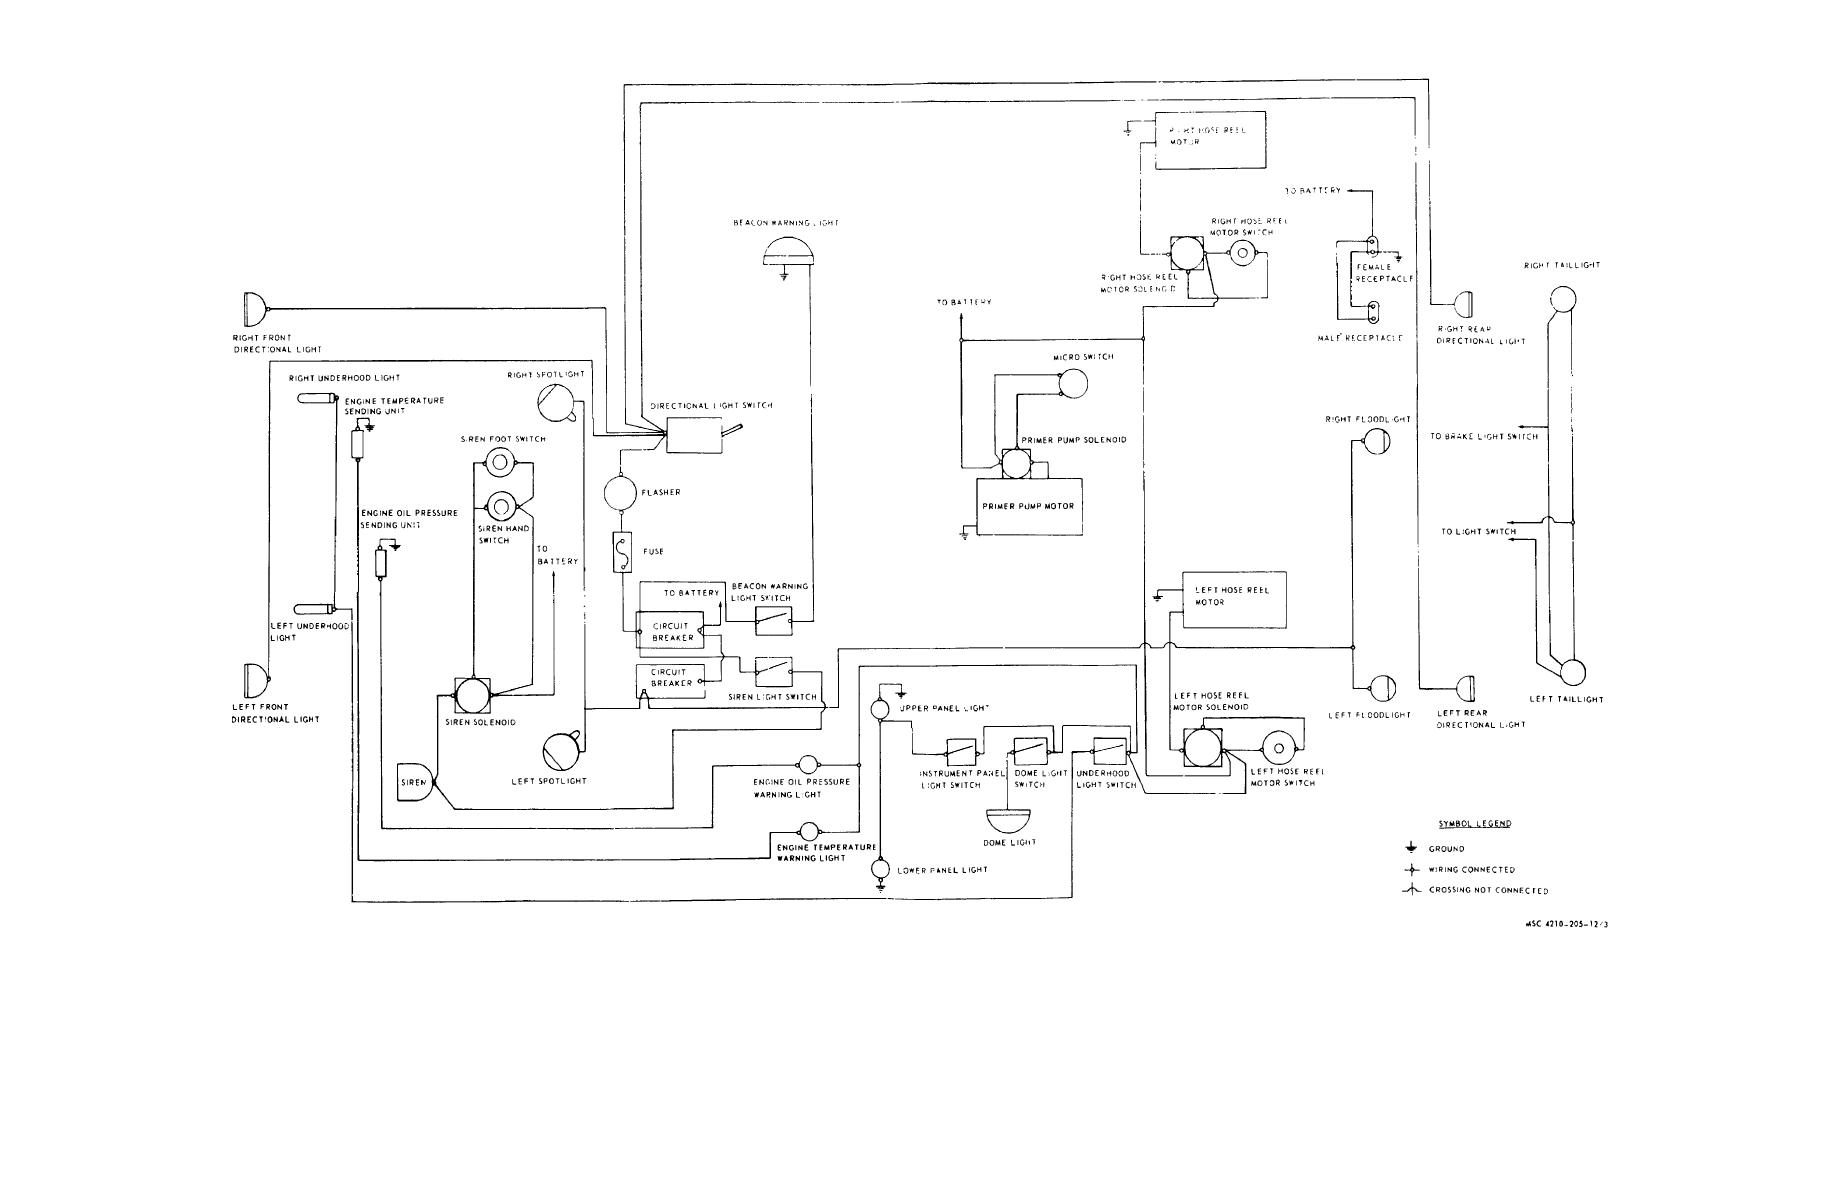 Figure 3. Wiring diagram.